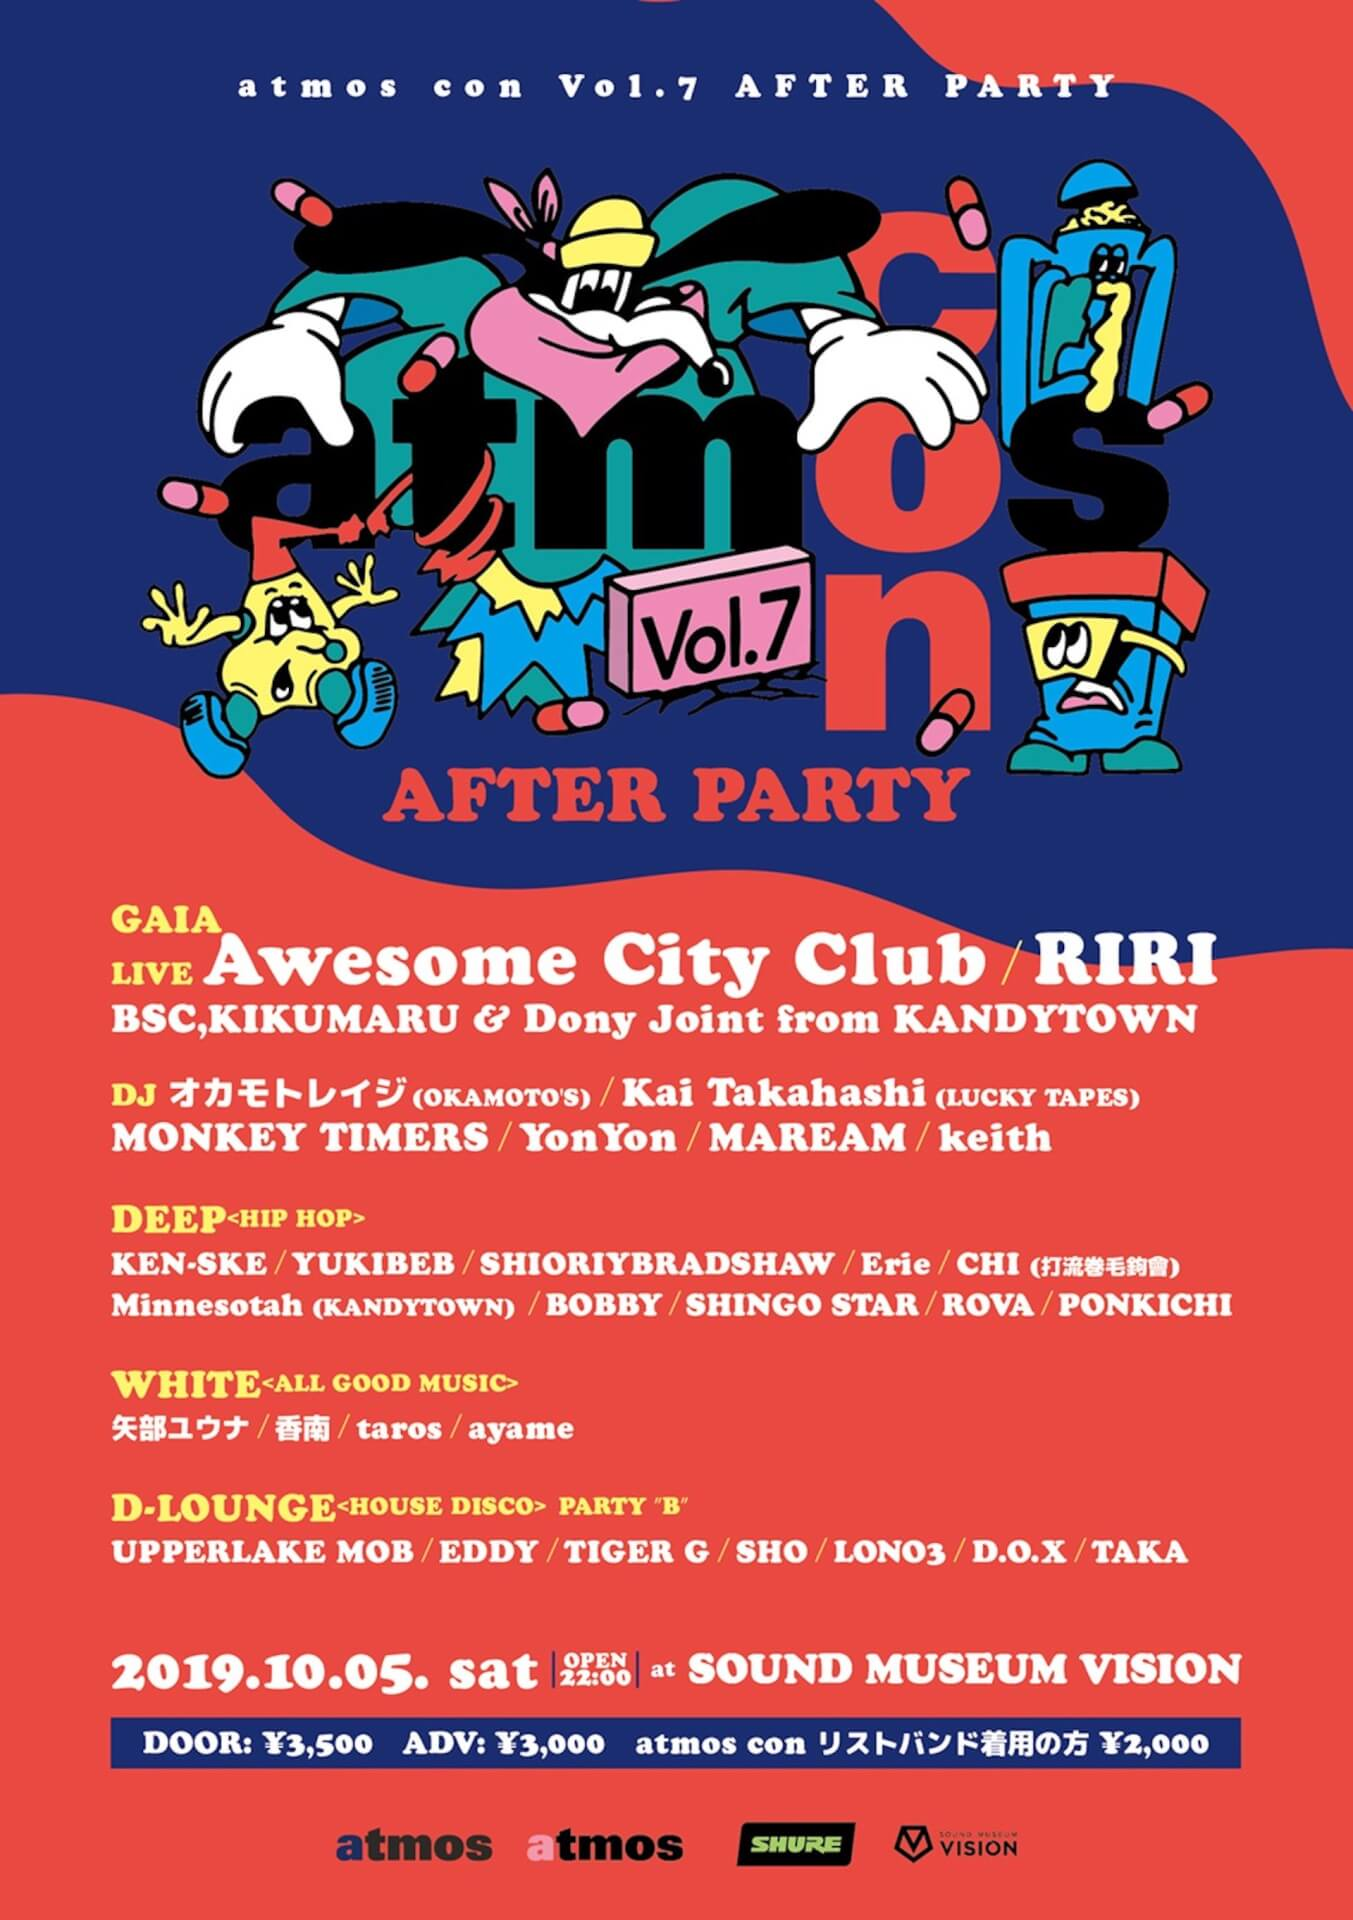 Awesome City ClubやRIRIらが出演!一夜限りのスペシャルイベント<atmos con vol.7 AFTER PARTY>開催決定! music191001_atmoscon_4